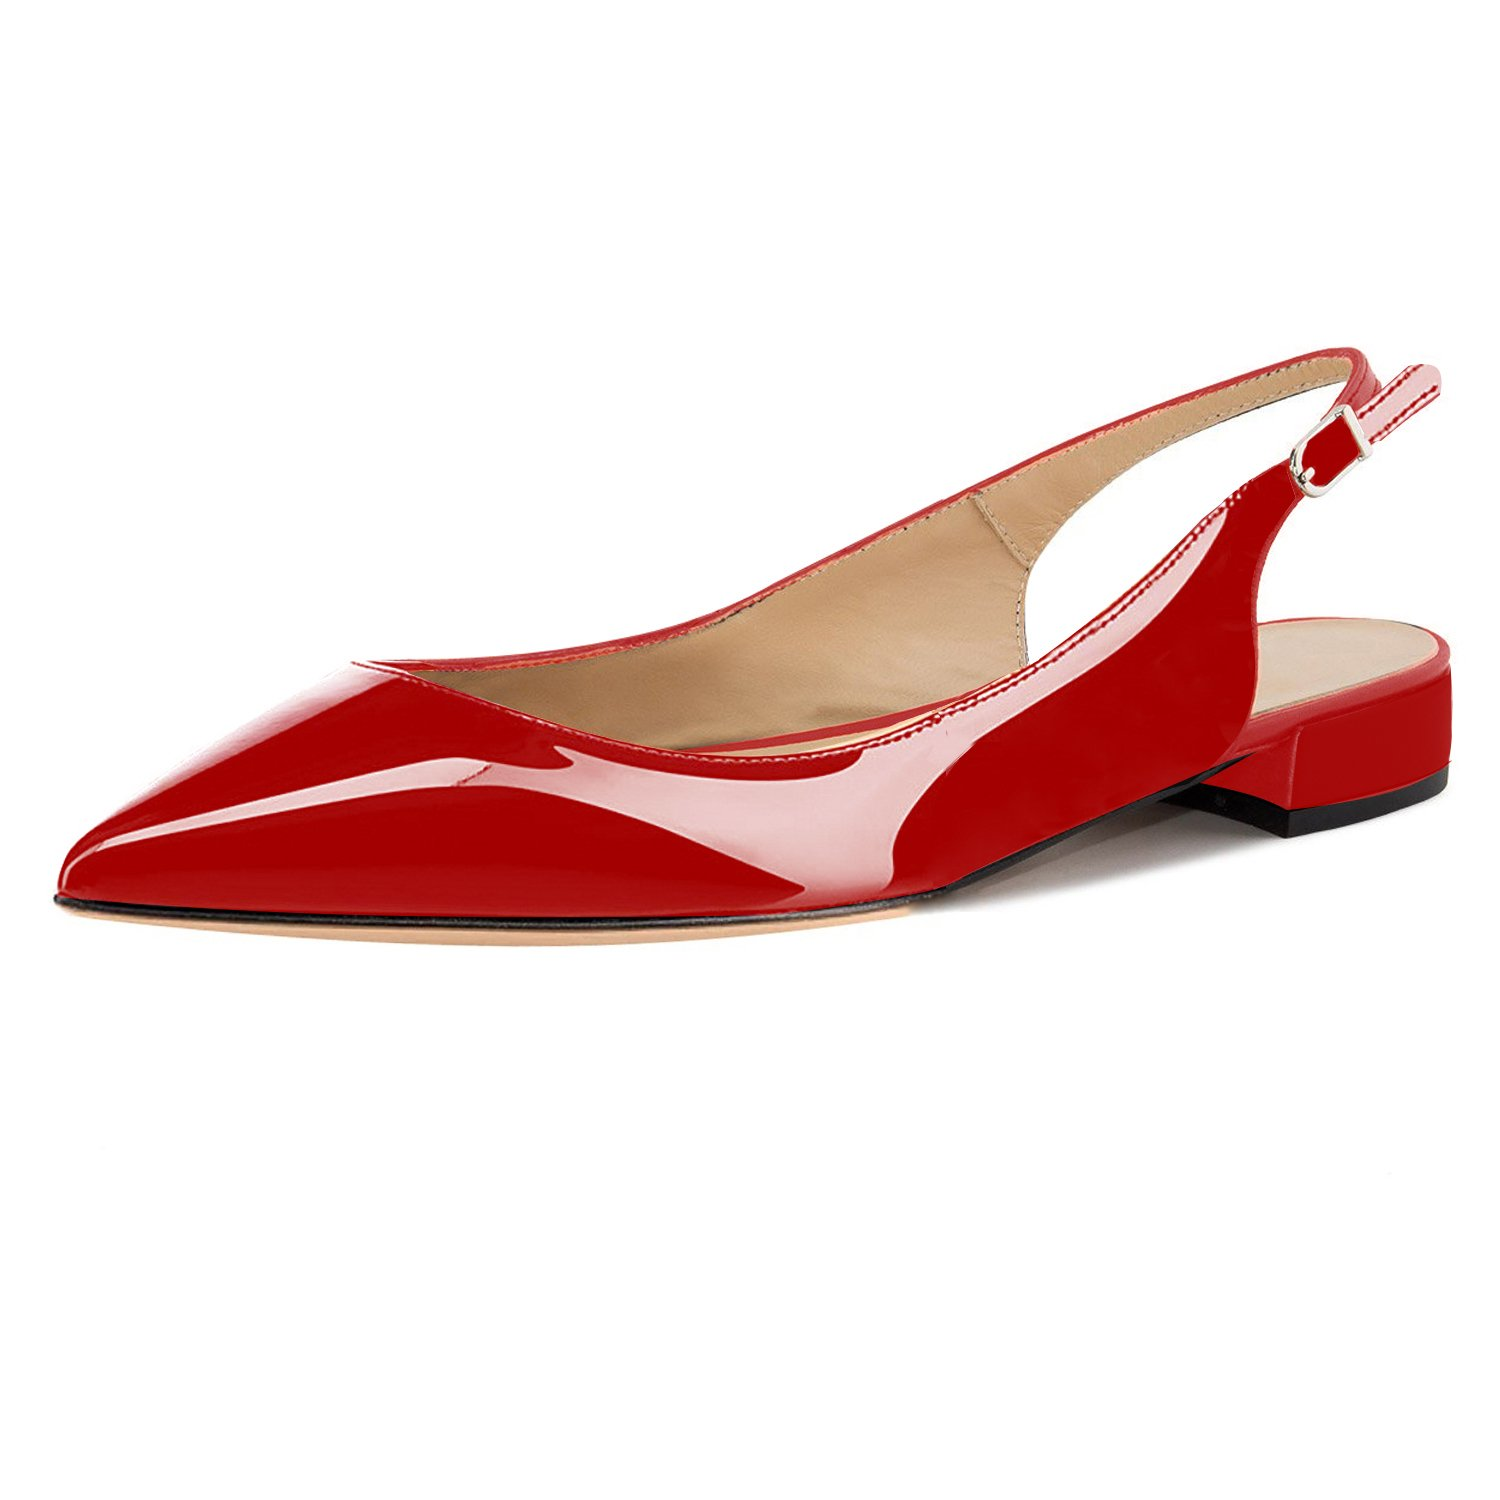 Eldof Women Low Heels Pumps | Pointed Toe Slingback Flat Pumps | 2cm Classic Elegante Court Shoes B07C4T4666 13 B(M) US|Patent Red